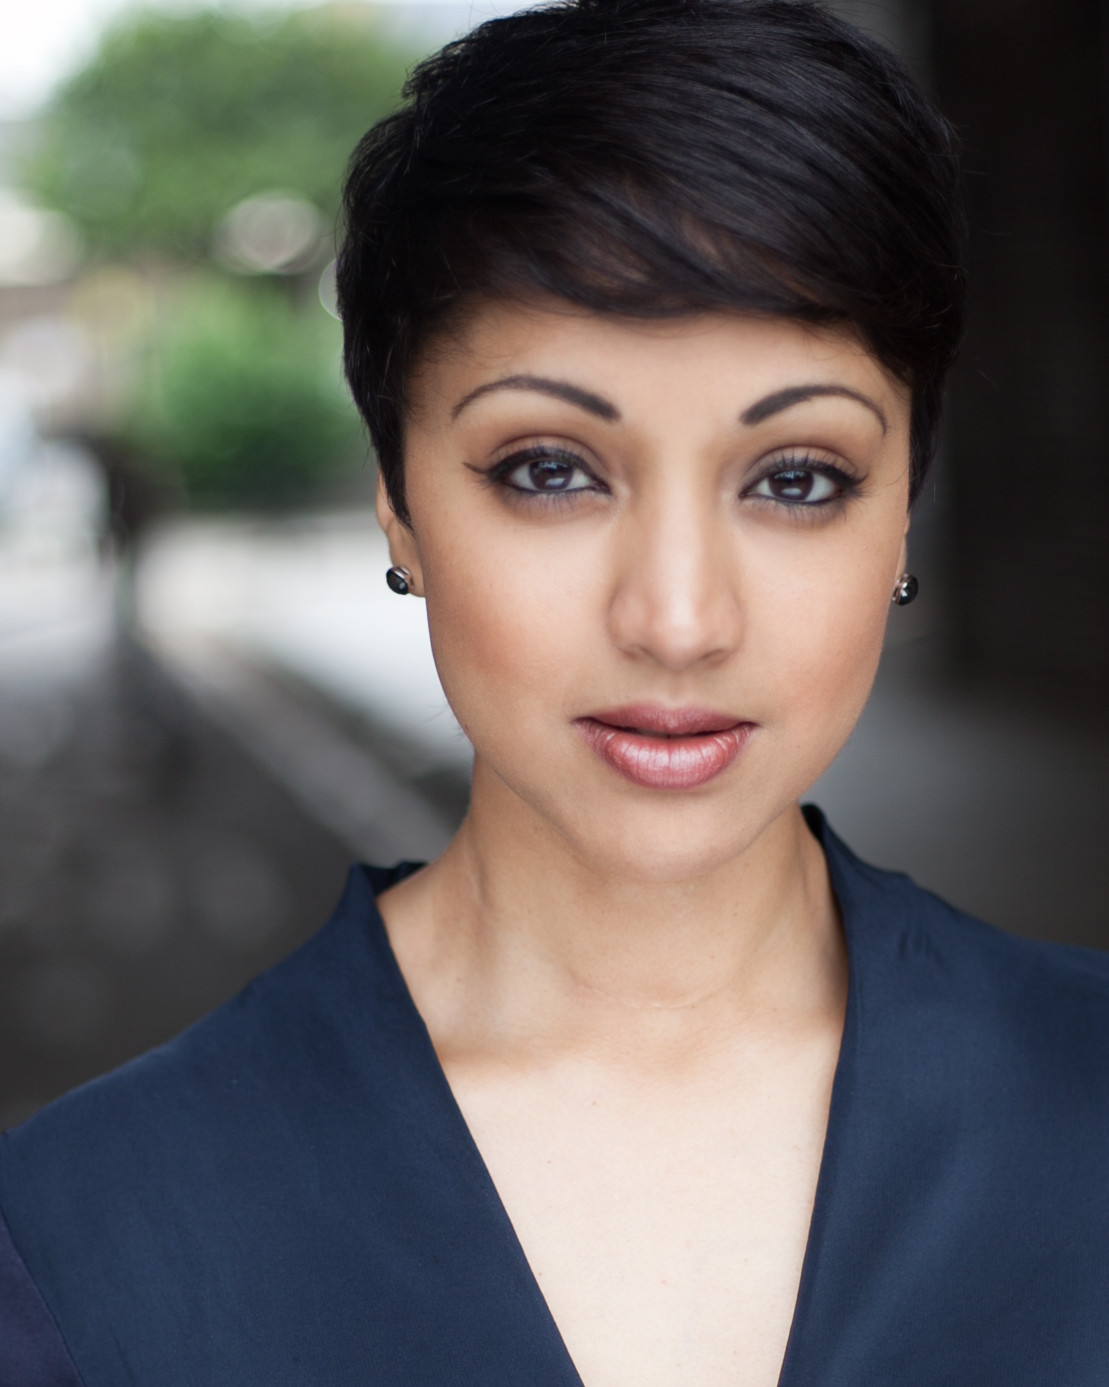 Communication on this topic: Anja Aguilar (b. 1994), nita-mistry-actress/